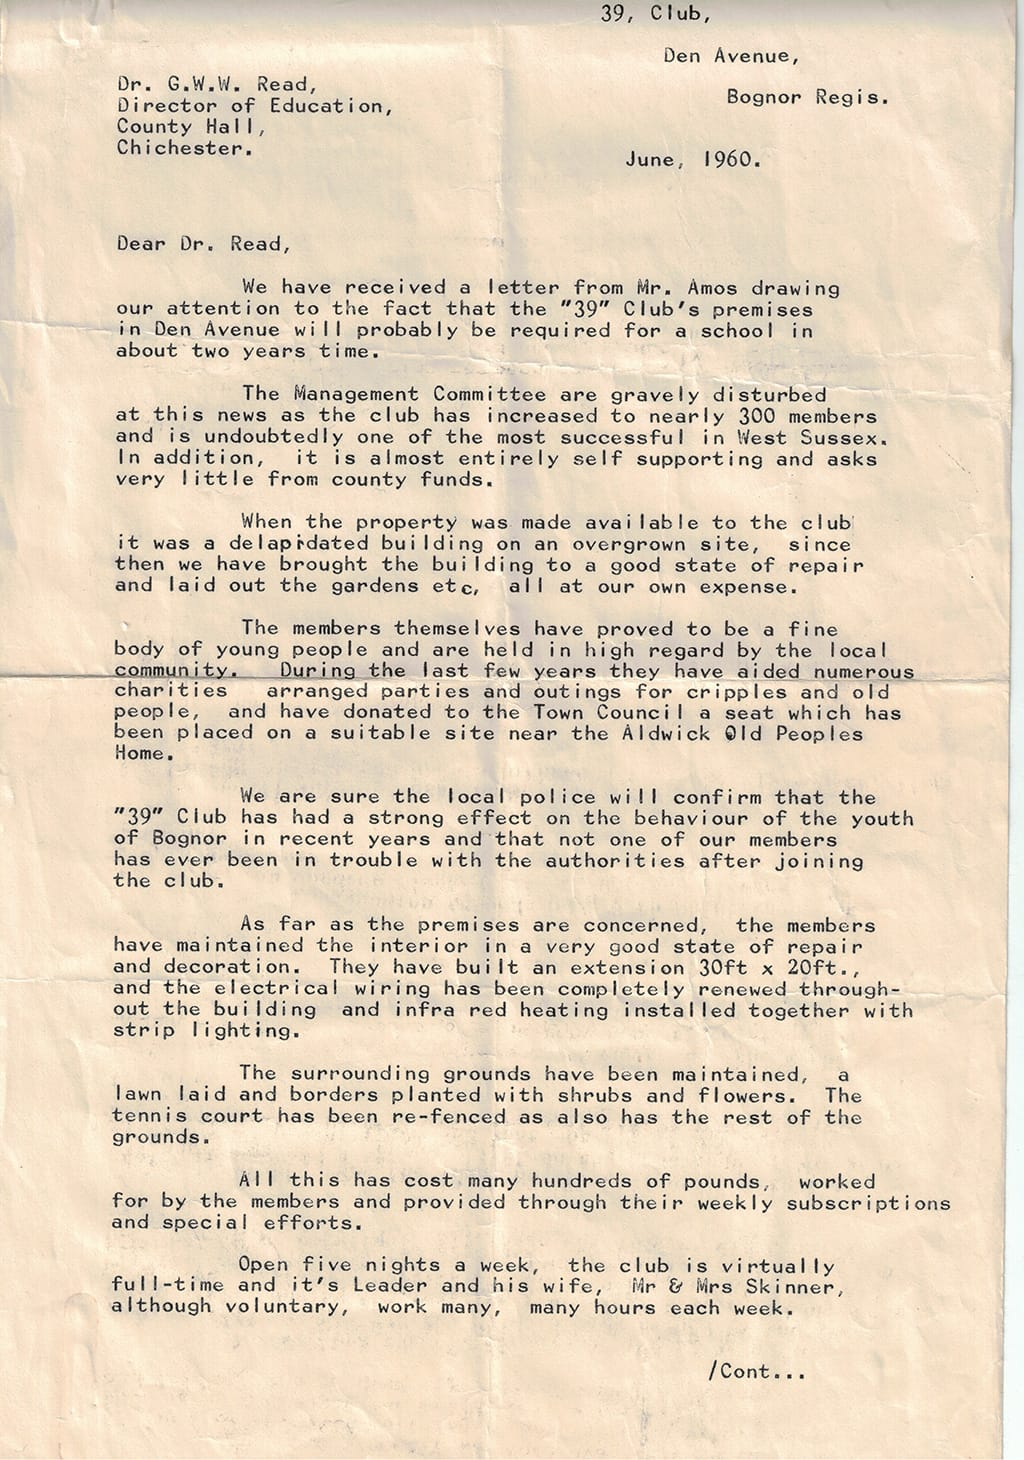 Picture of letter from 1960s